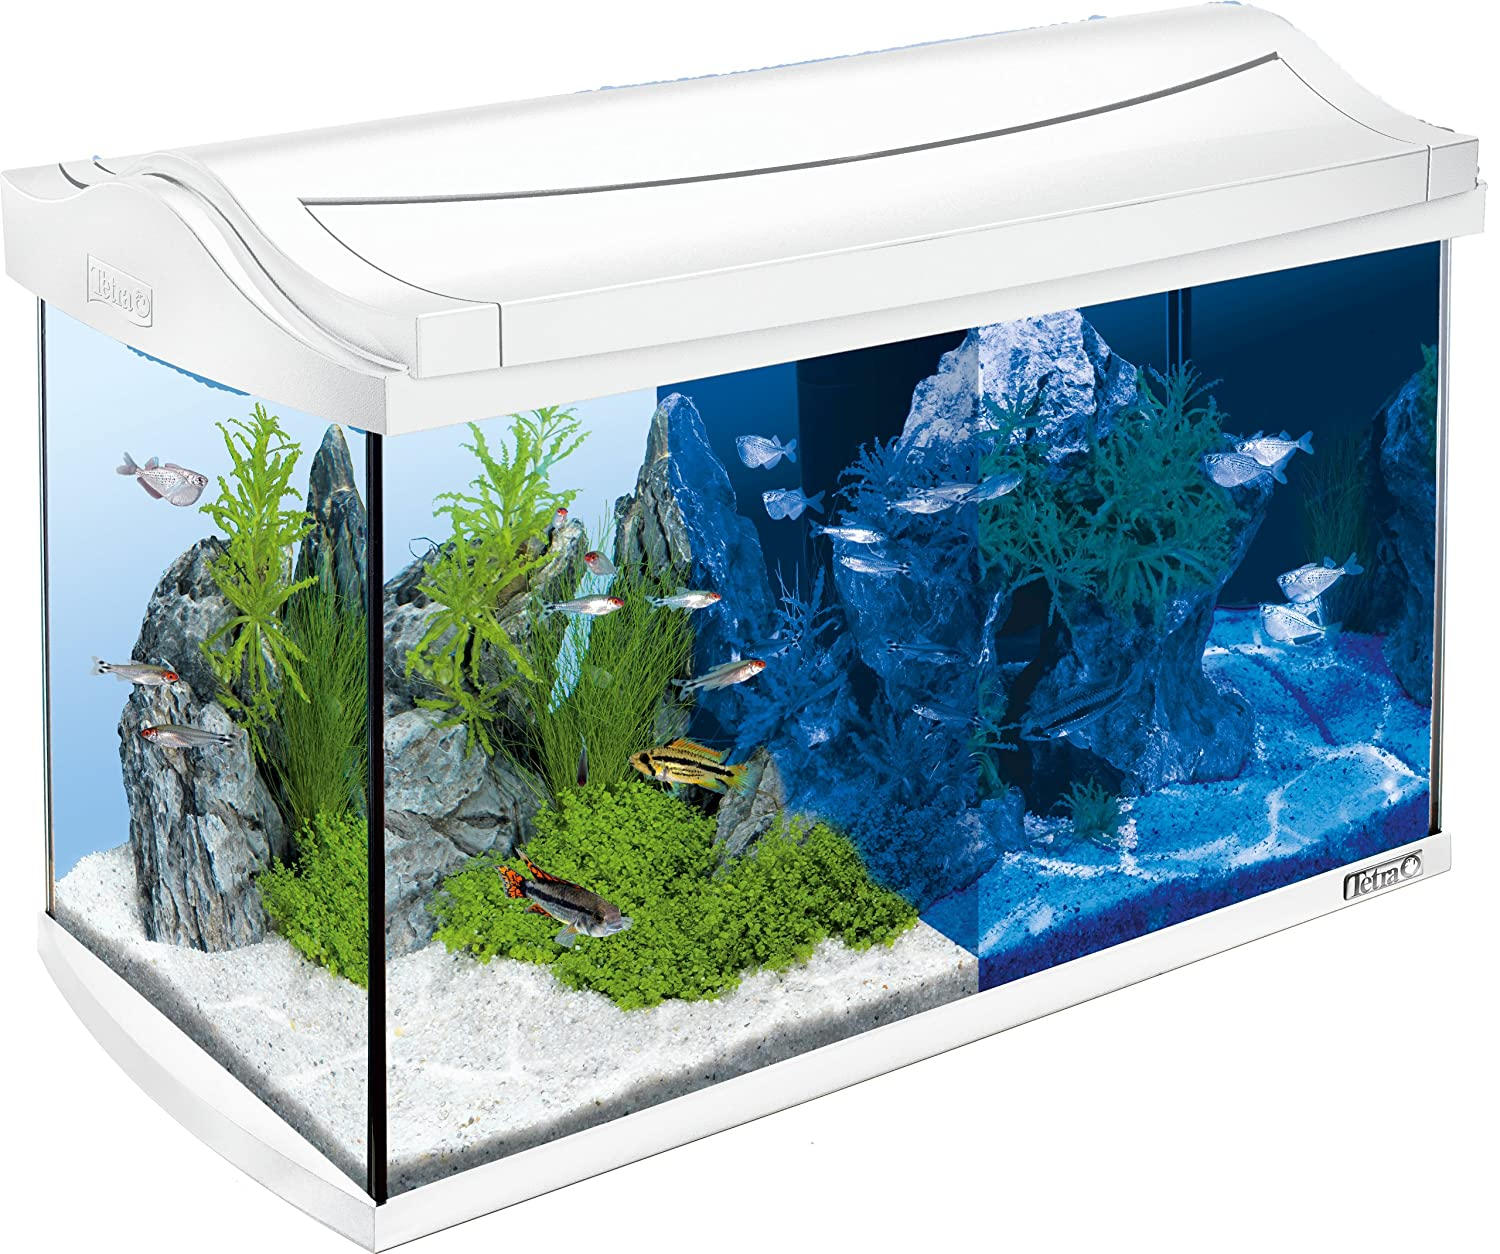 tetra aquaart discovery line led aquarium komplett set wei inklusive led beleuchtung tag und. Black Bedroom Furniture Sets. Home Design Ideas